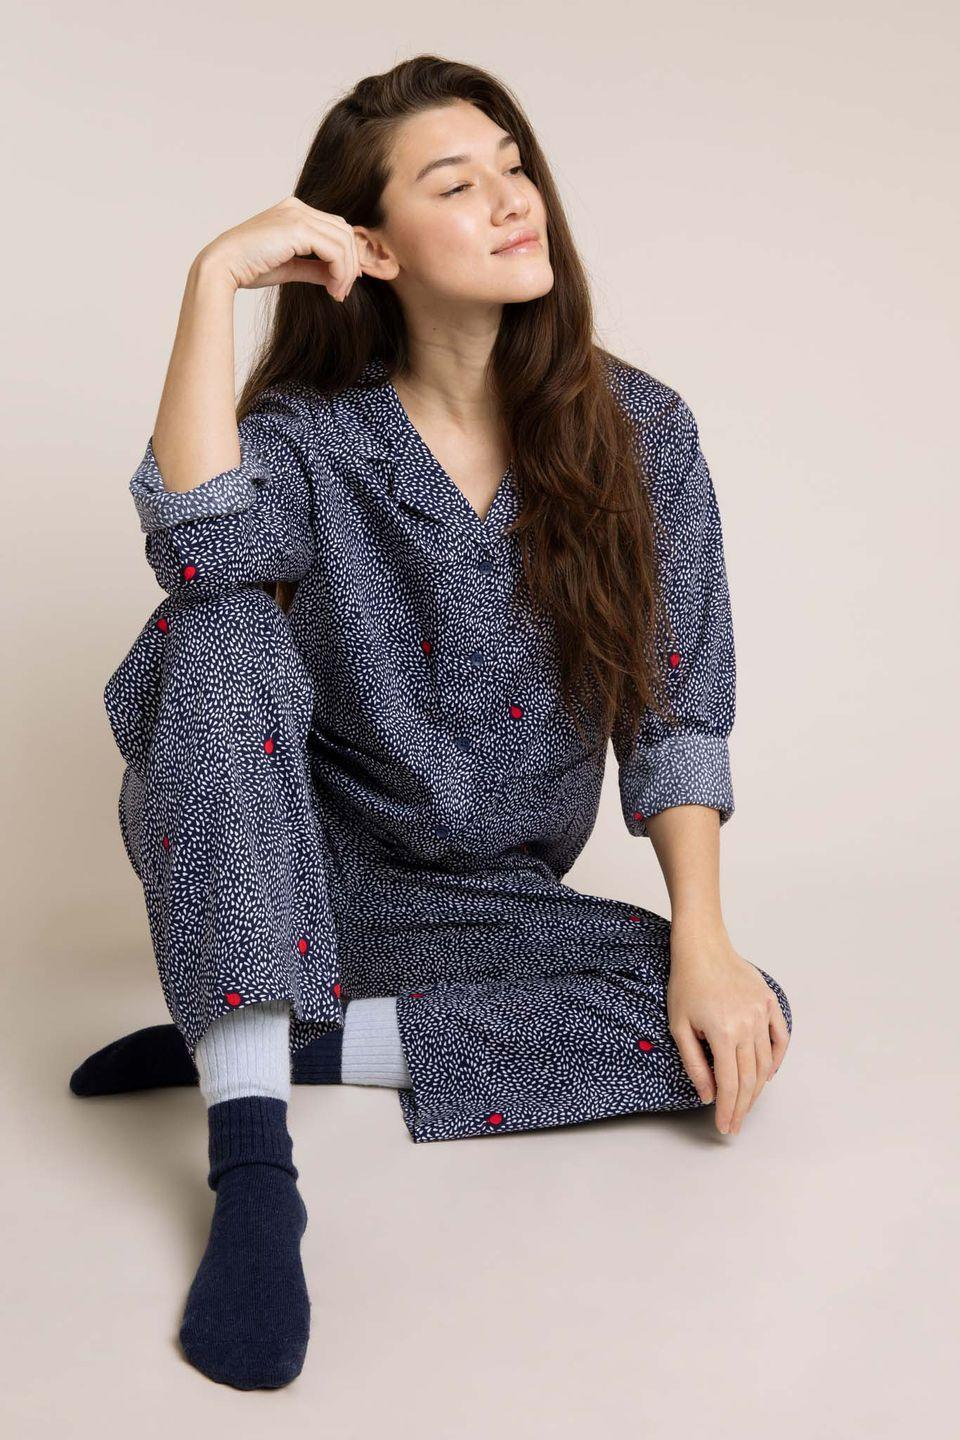 """<p><a class=""""link rapid-noclick-resp"""" href=""""https://www.loveyawn.com/"""" rel=""""nofollow noopener"""" target=""""_blank"""" data-ylk=""""slk:SHOP NOW"""">SHOP NOW</a></p><p>Yawn aims to create nightwear that feels like a hug, styles that encourage you to relax and unwind. Characterised by its hand-drawn prints and super comfortable materials, the label offers pyjamas, night dresses, night shirts and sleep socks. We're particular fans of the playful <a href=""""https://www.loveyawn.com/collections/bums-roses"""" rel=""""nofollow noopener"""" target=""""_blank"""" data-ylk=""""slk:bums and roses print,"""" class=""""link rapid-noclick-resp"""">bums and roses print,</a> inspired by the women's pond at Hampstead Heath.</p>"""